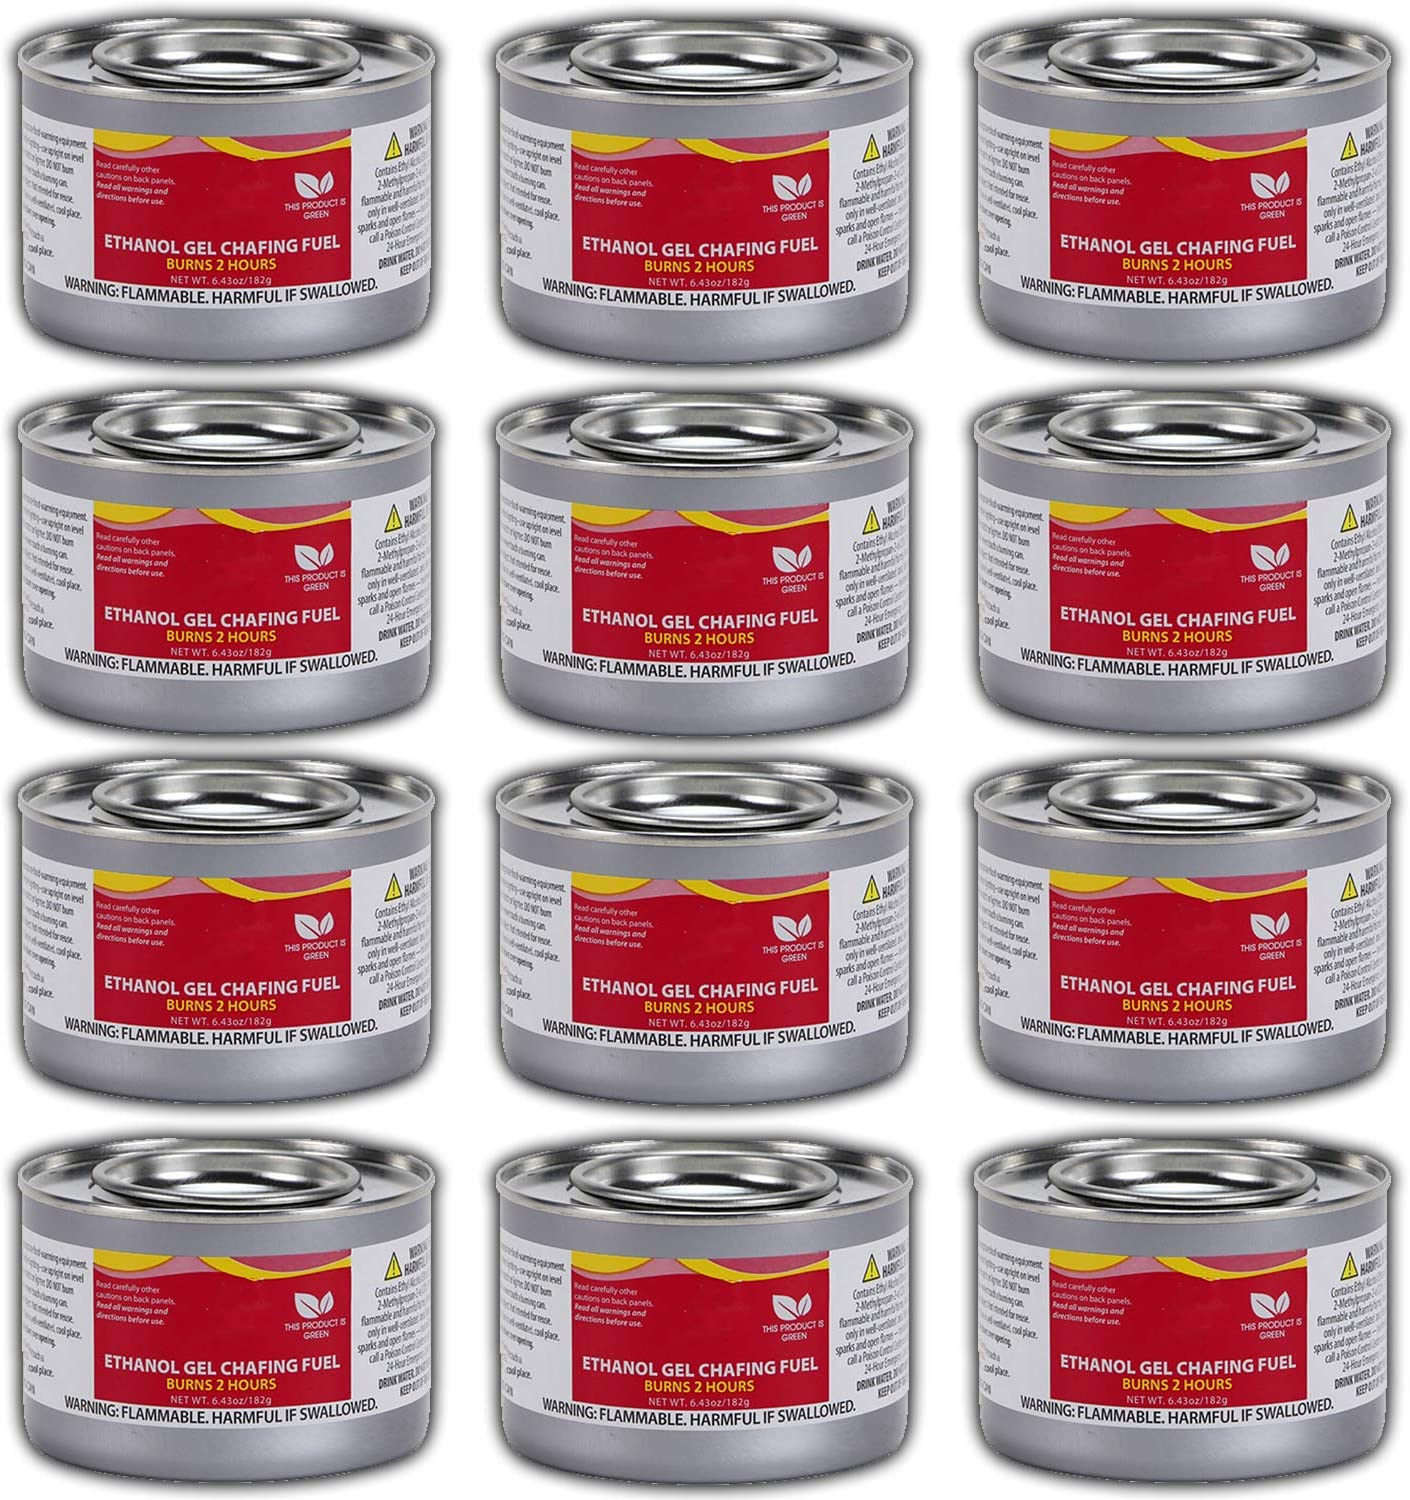 Chafing Dish Fuel Cans – Includes 12 Ethanol Gel Chafing Fuels, Burns for 2.5 Hours (6.43 OZ) for your Cooking, Food Warming, Buffet and Parties.